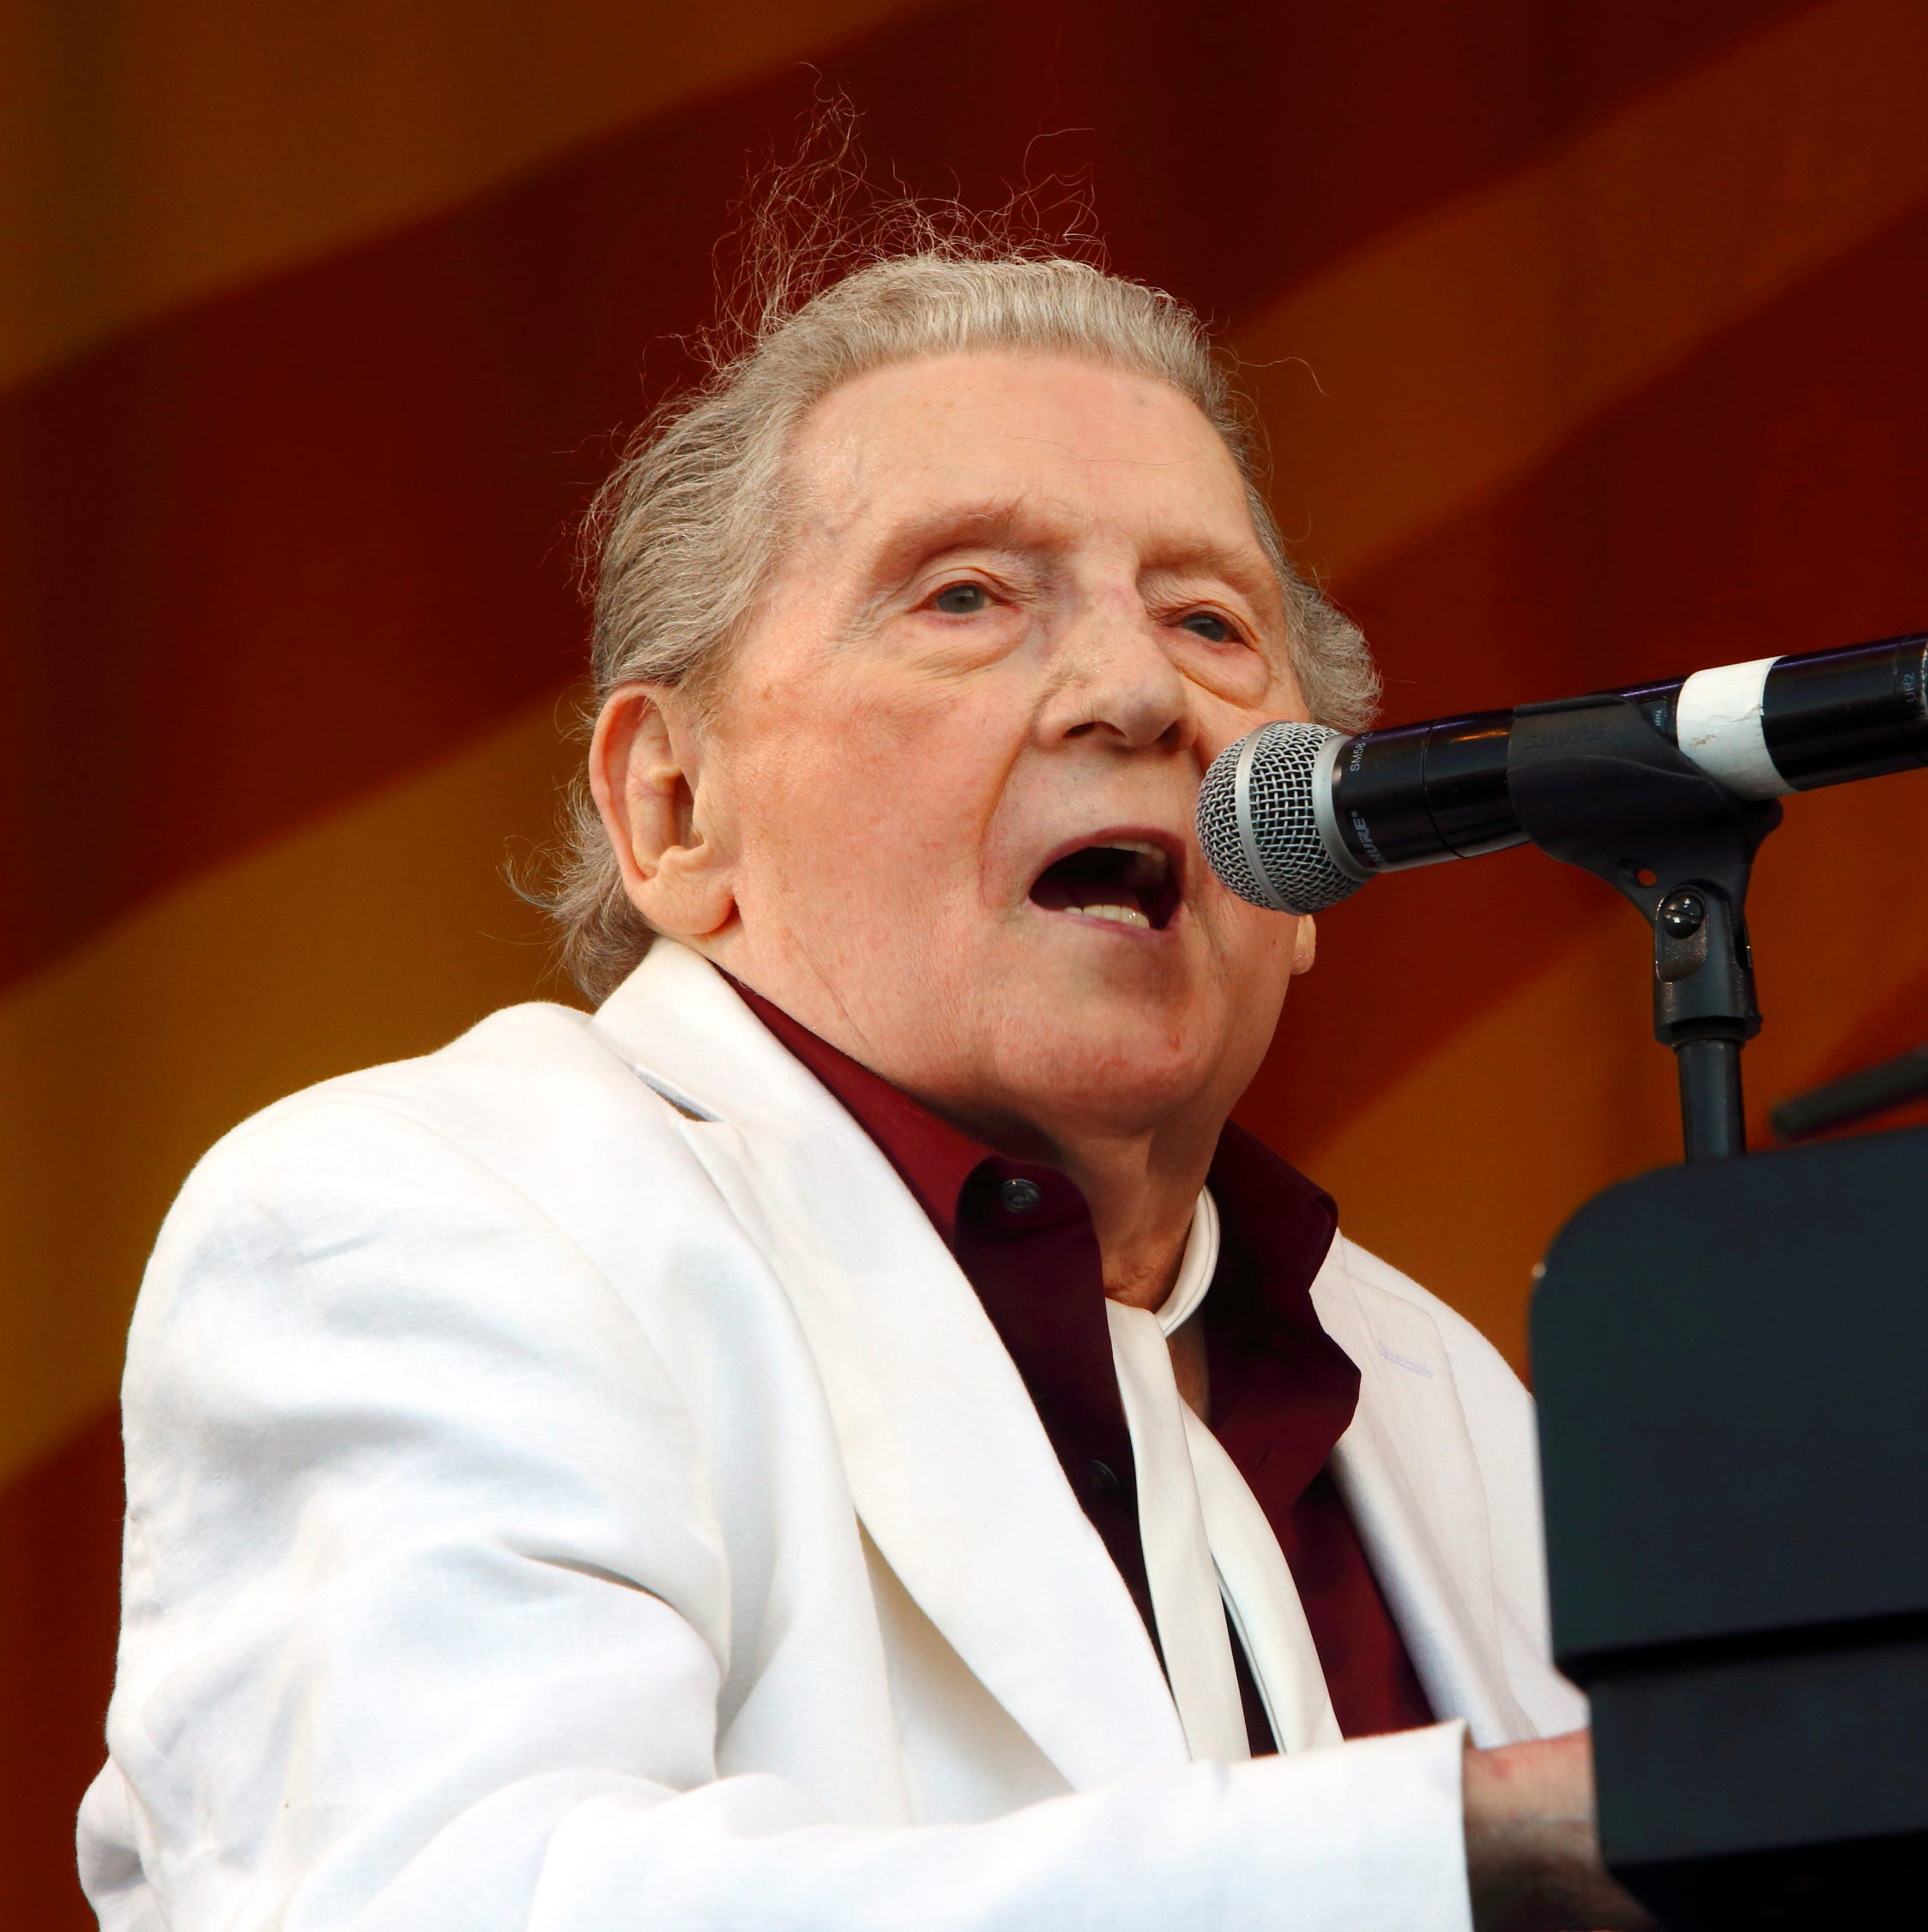 Judge dismisses most of suit between Jerry Lee Lewis, family